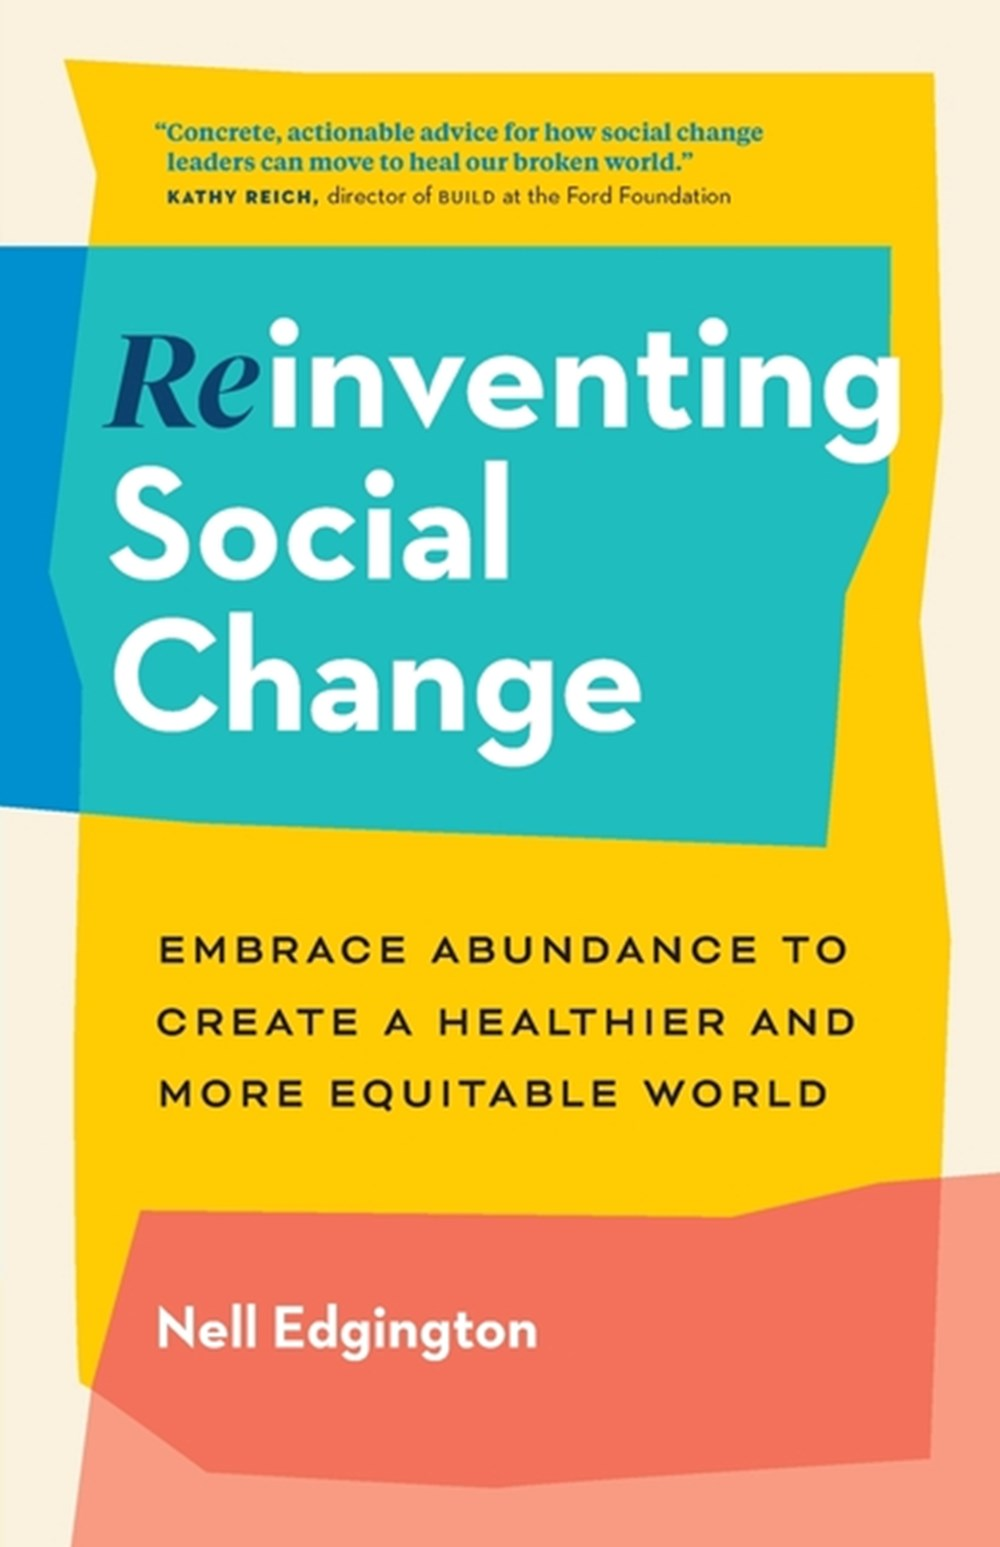 Reinventing Social Change Embrace Abundance to Create a Healthier and More Equitable World